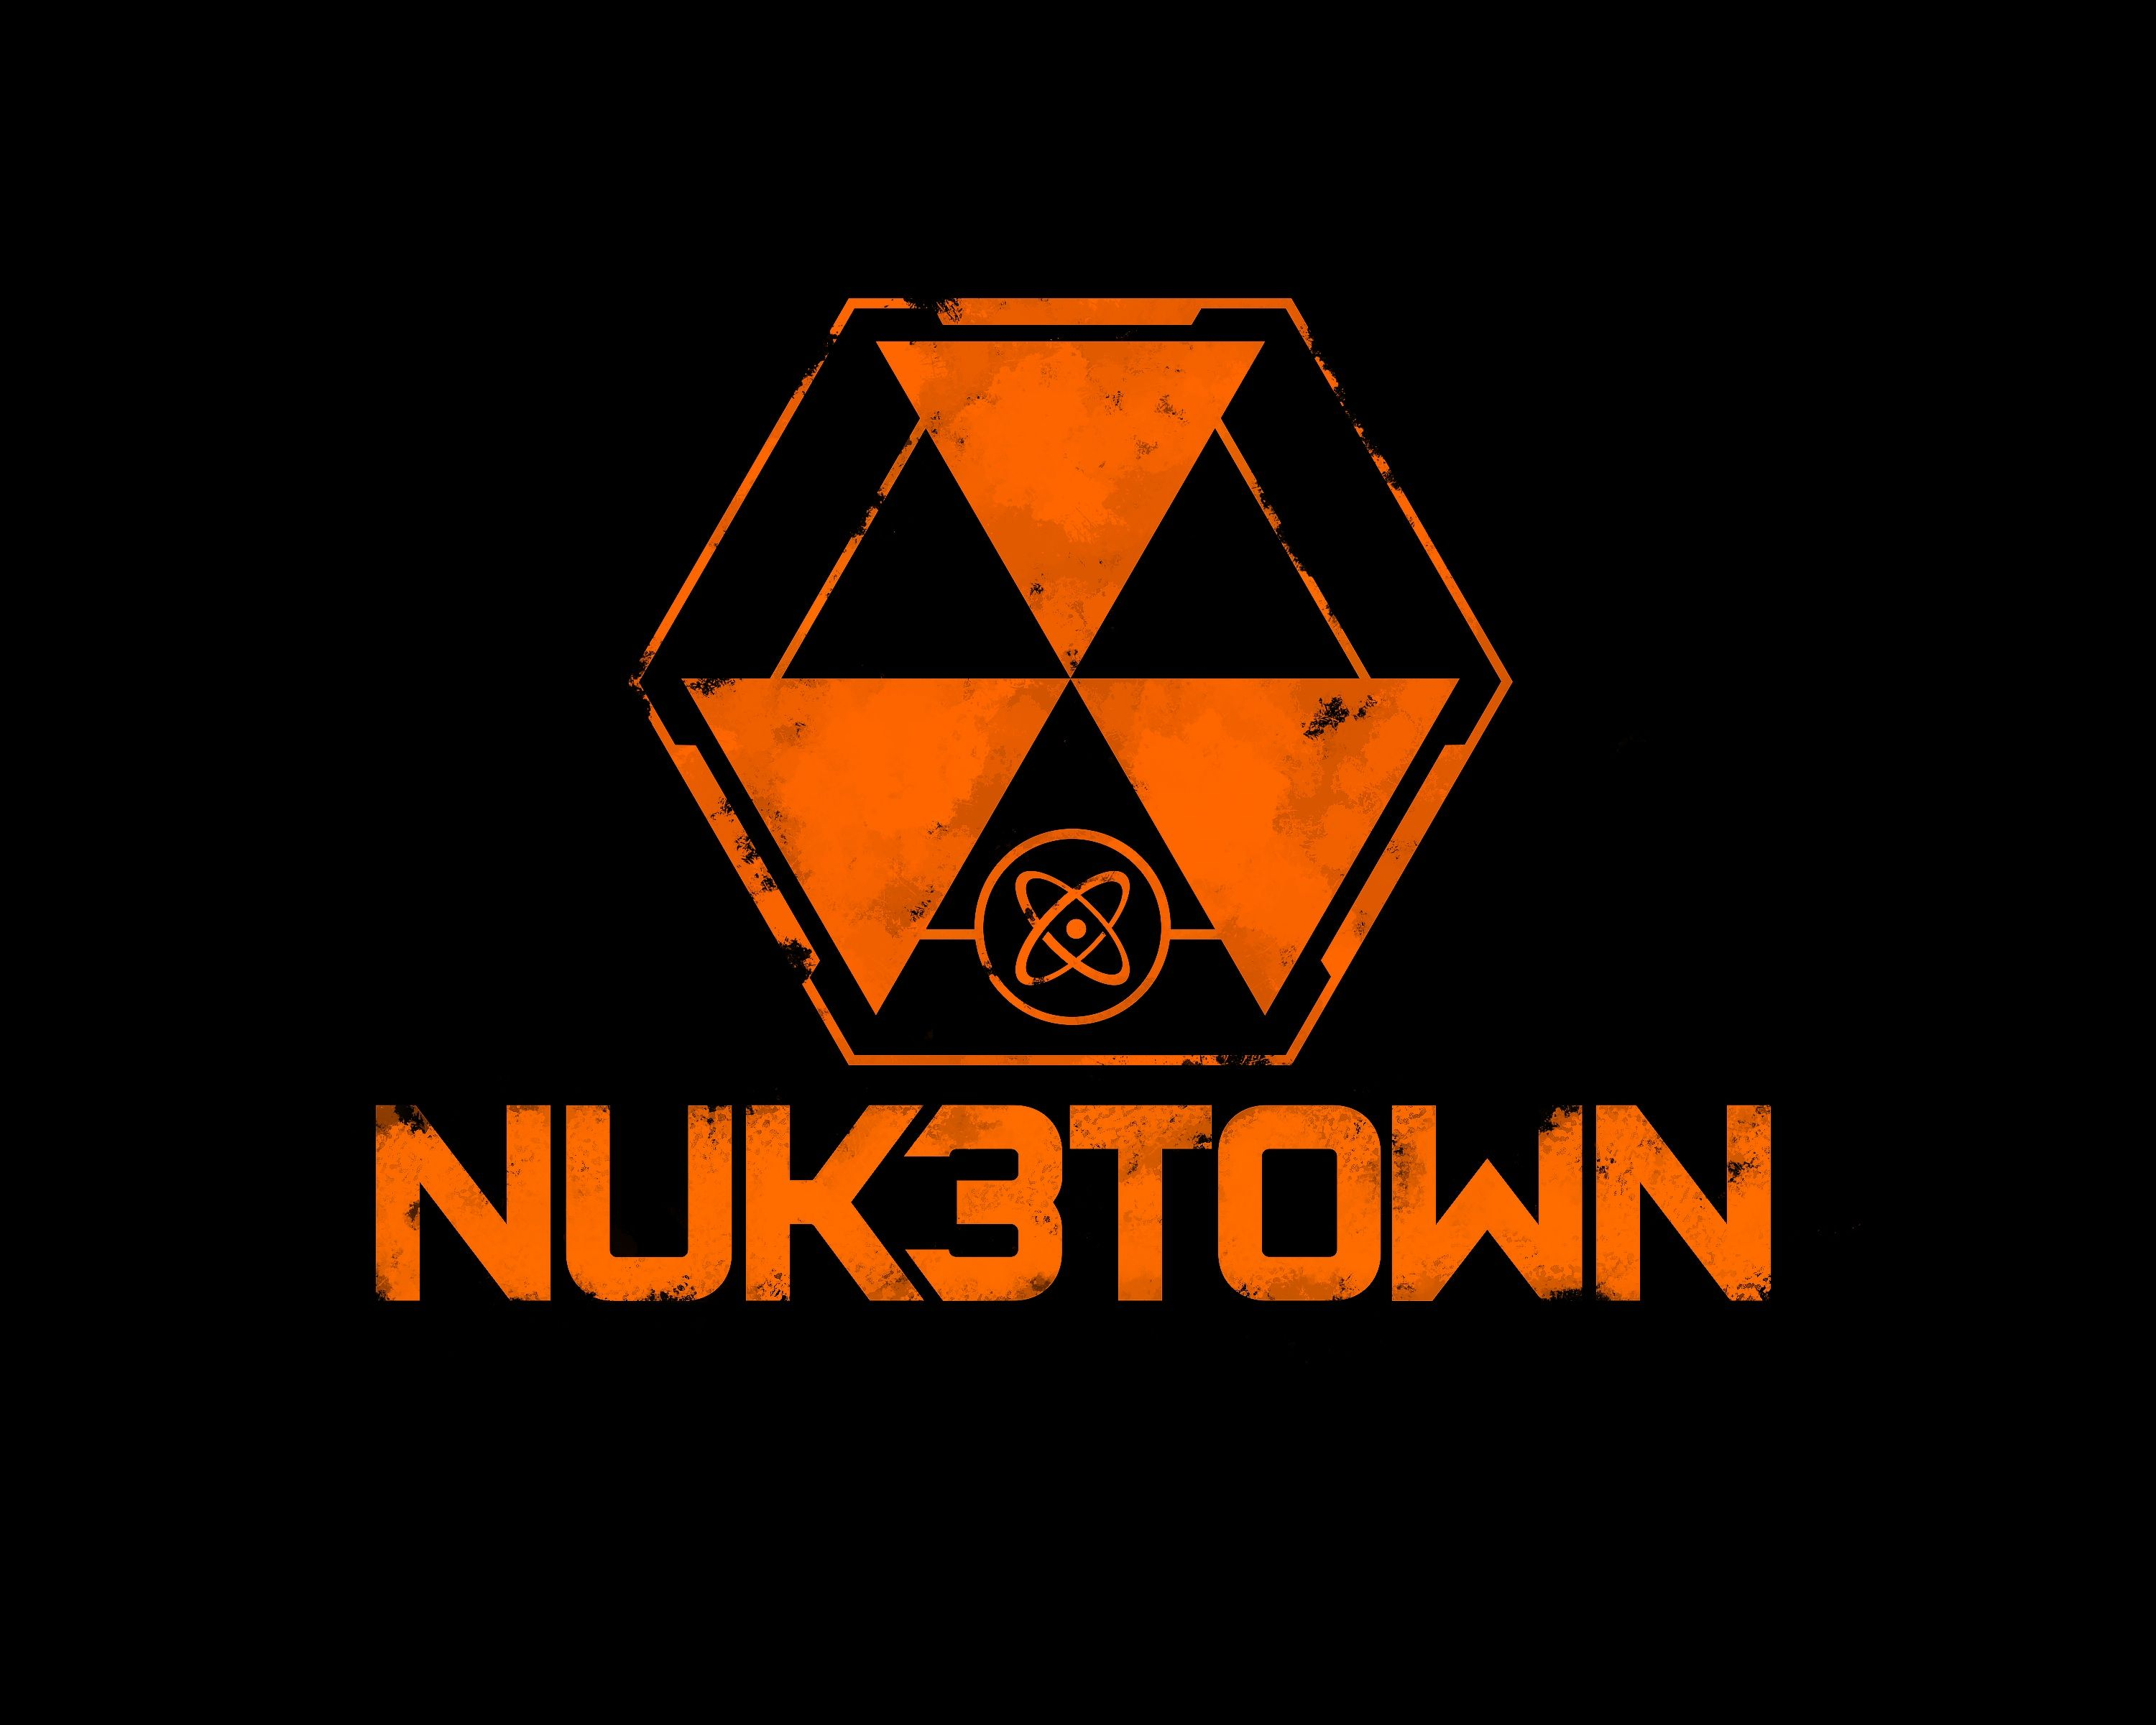 Call Of Duty Black Ops 3 Nuketown Logo